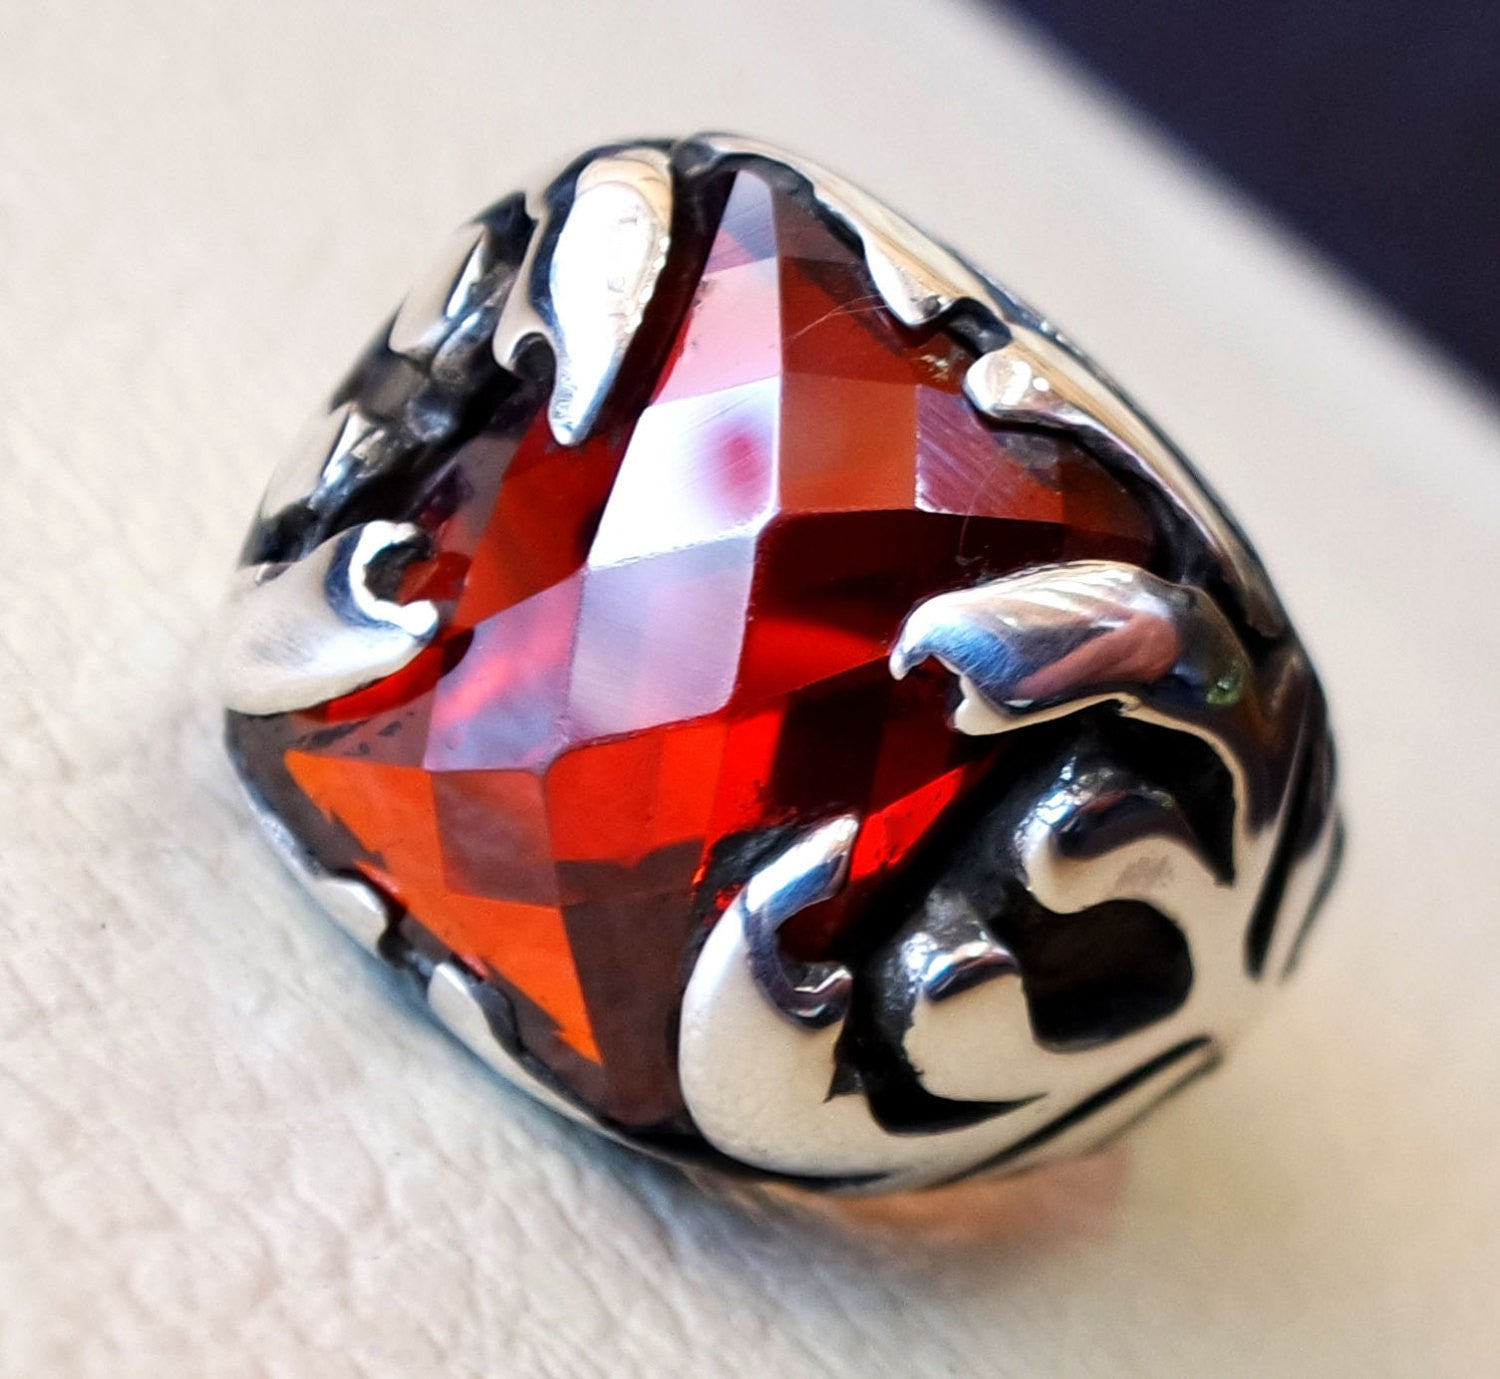 red ruby color cabochon octagon stone man ring sterling silver 925 all sizes high quality jewelry ottoman middle eastern antique style